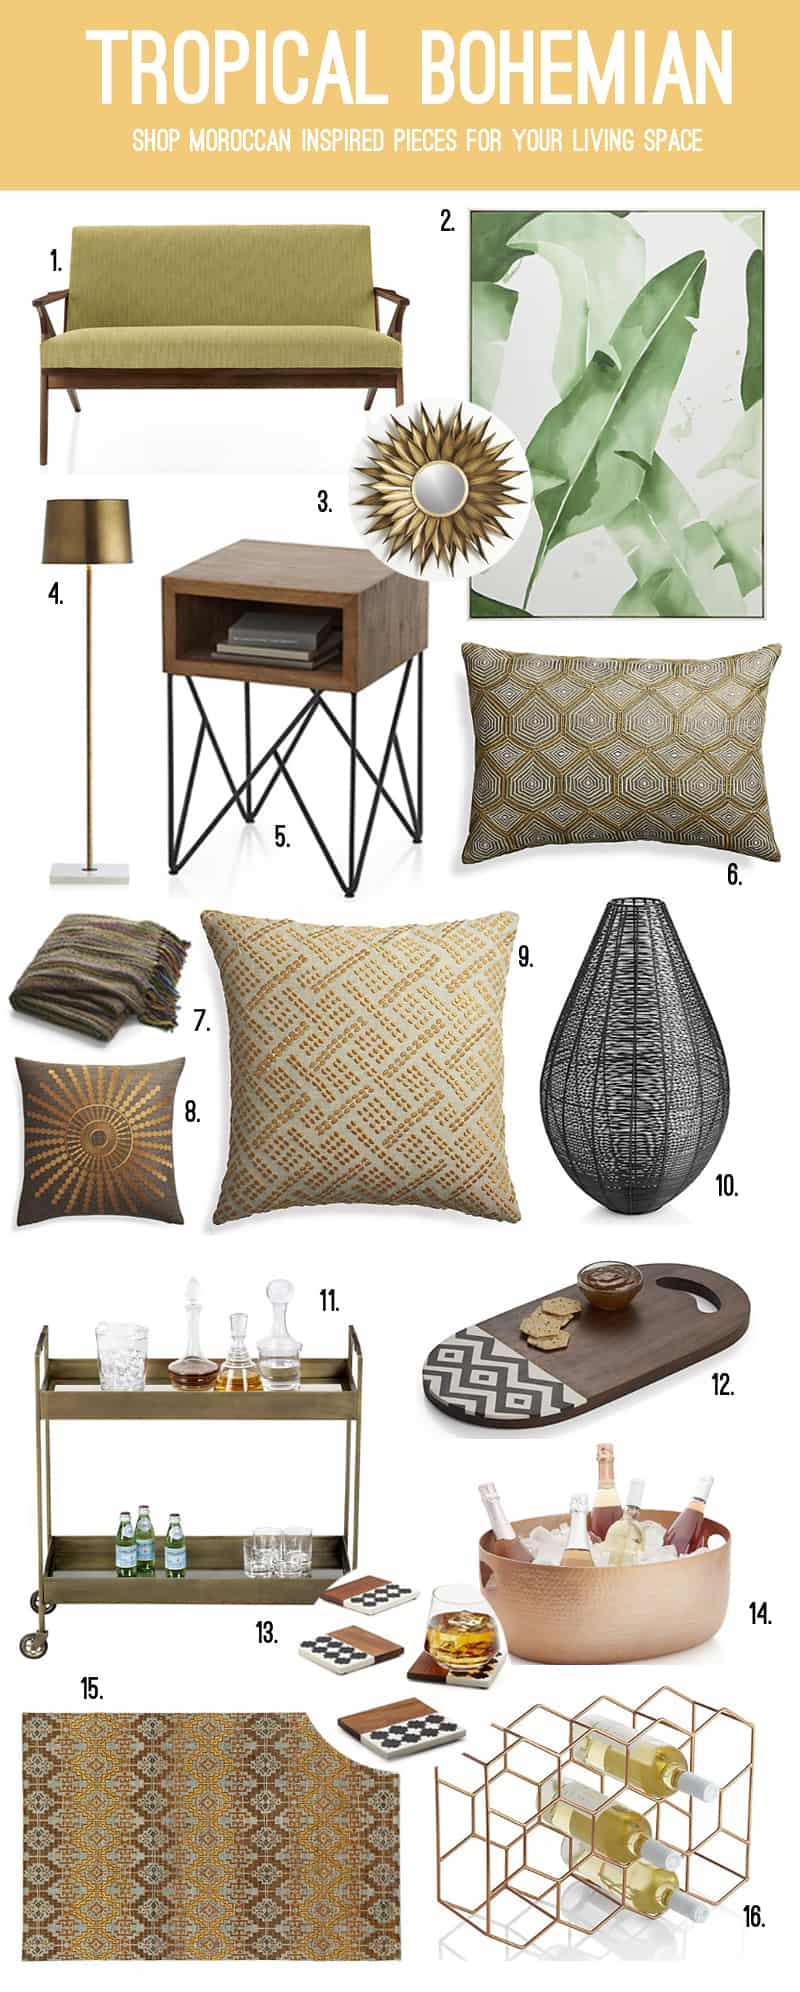 crate-barrel-wedding-registry-boho-living-yellow-rustic